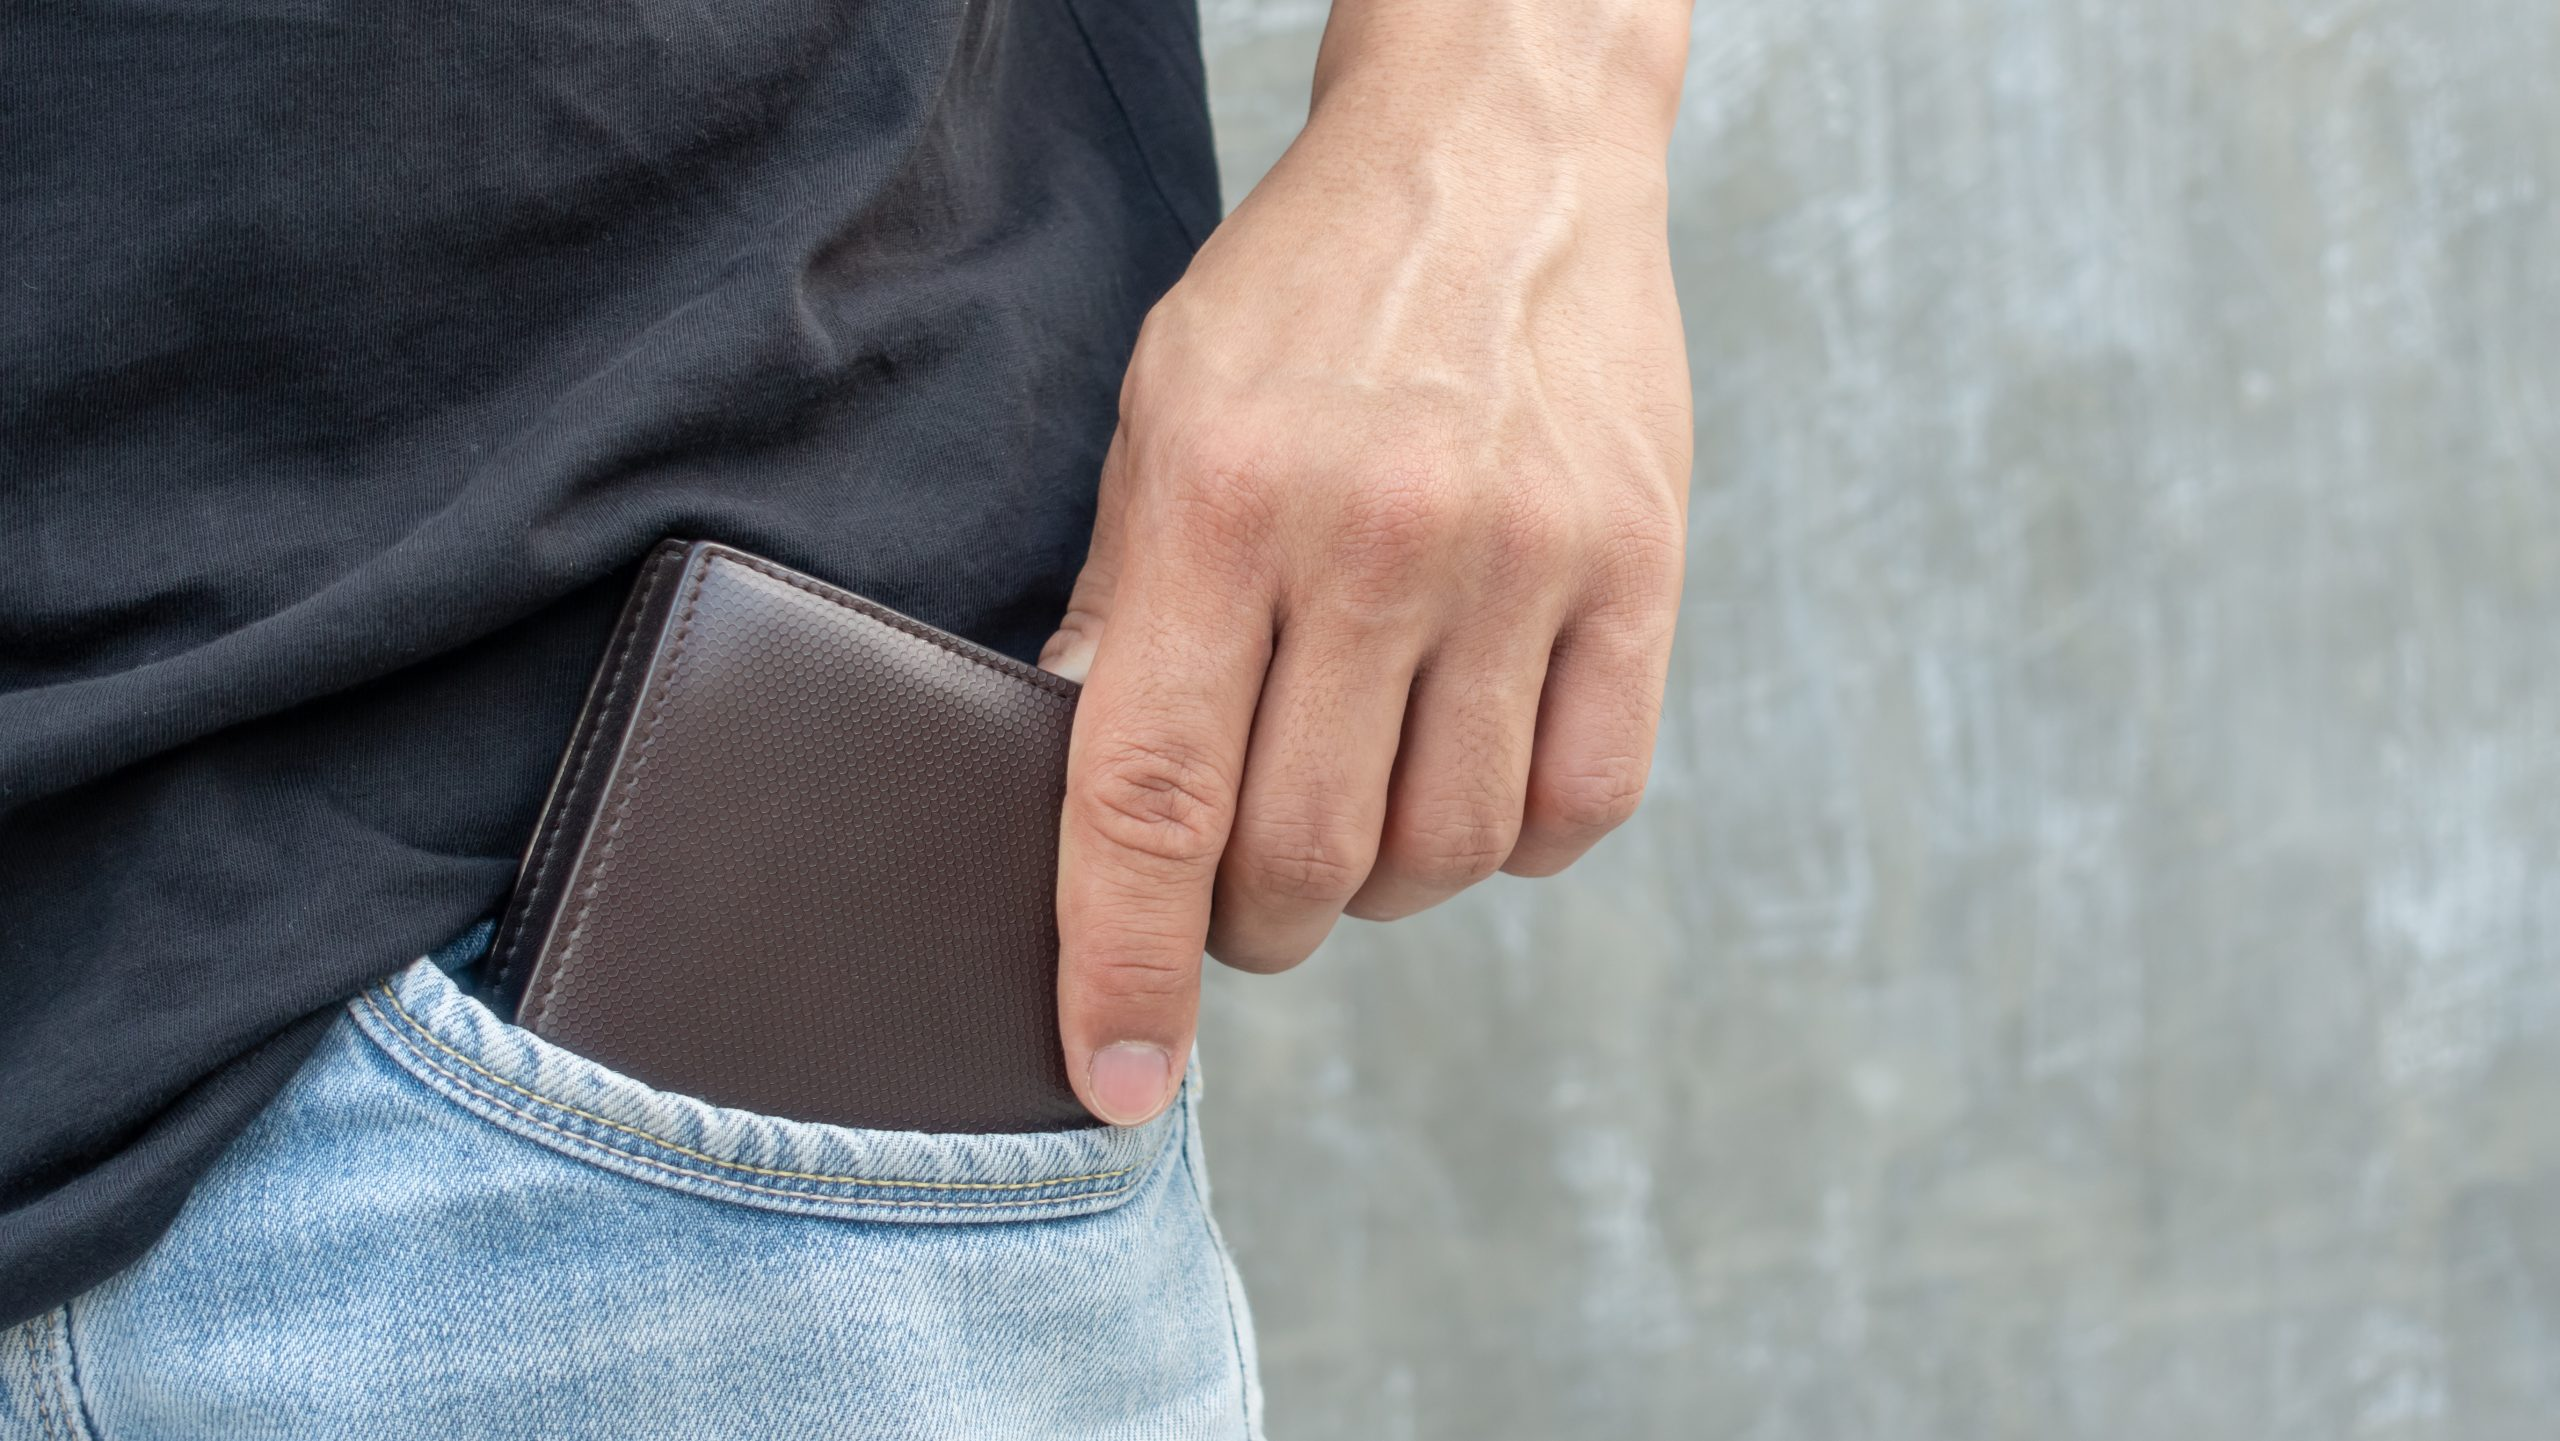 Men hold a brown wallet from a jeans pocket.